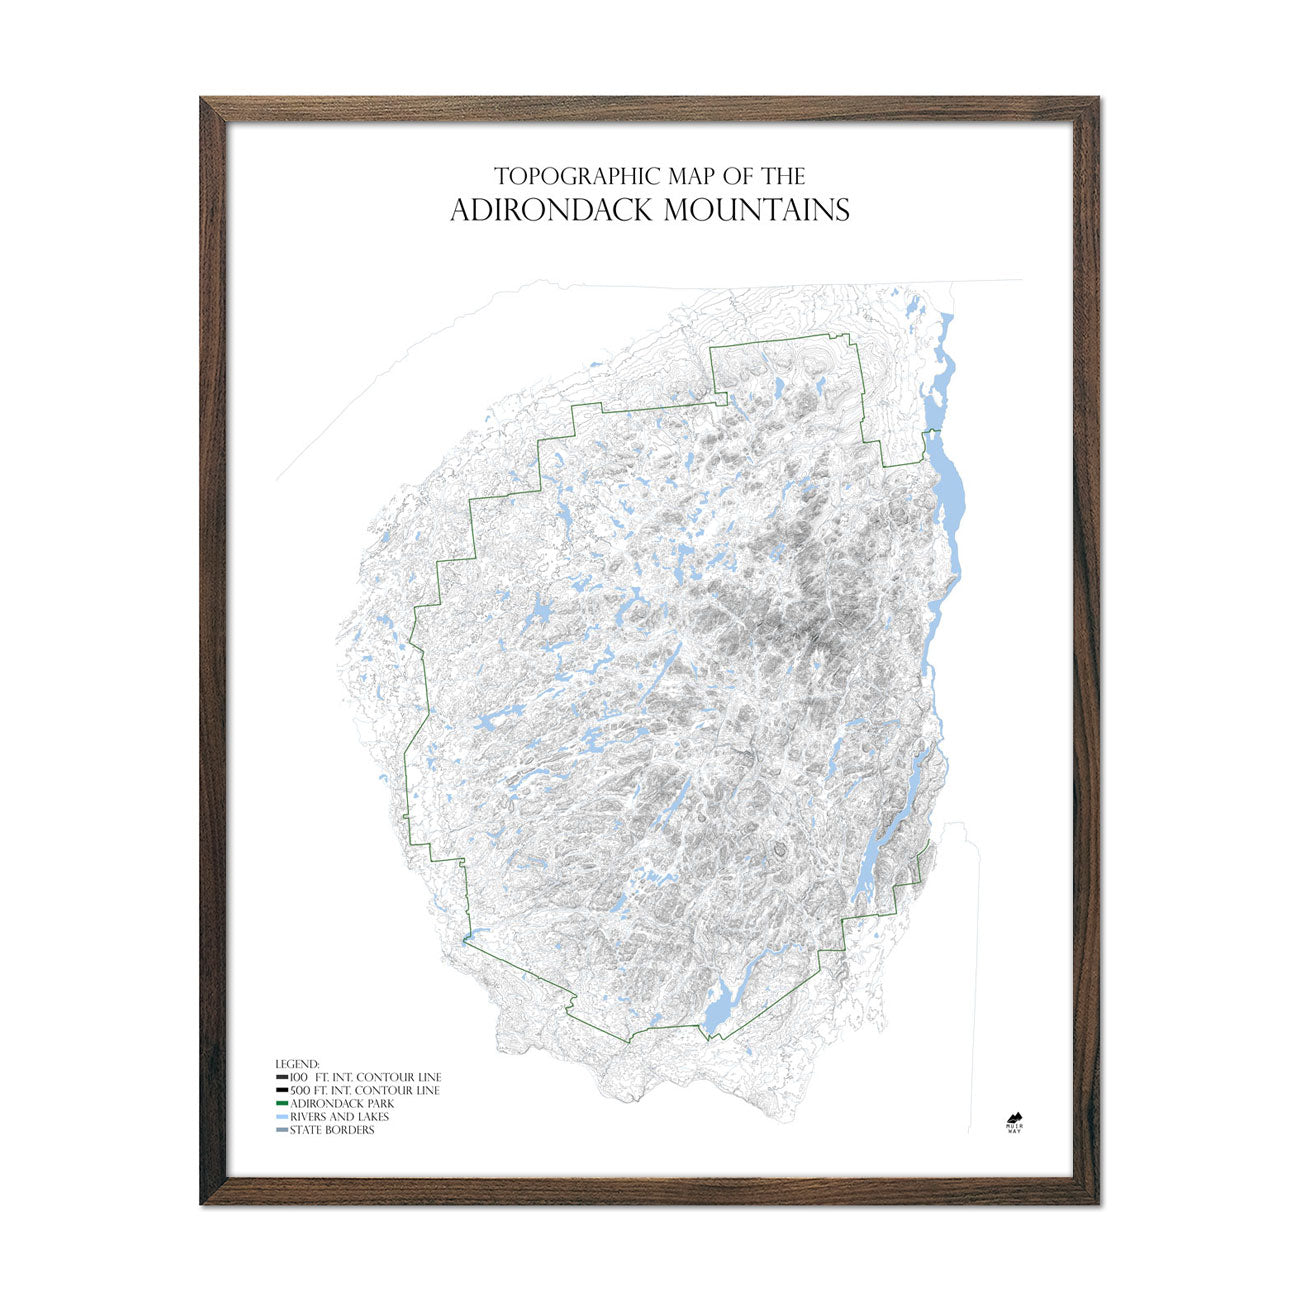 Display Your Sense of Adventure with these Mountain Ranges ... on maine shootings, maine topographic map, maine land cover map, maine state seal, maine east map, maine longitude map, maine vegetation map, appalachian mountain region canada map, old york maine map, maine campus map, maine sea level map, maine land ownership map, maine fire map, maine state physical map, solon maine map, maine tributary map, maine state population map, maine luxury homes, maine topo maps online, maine distance map,